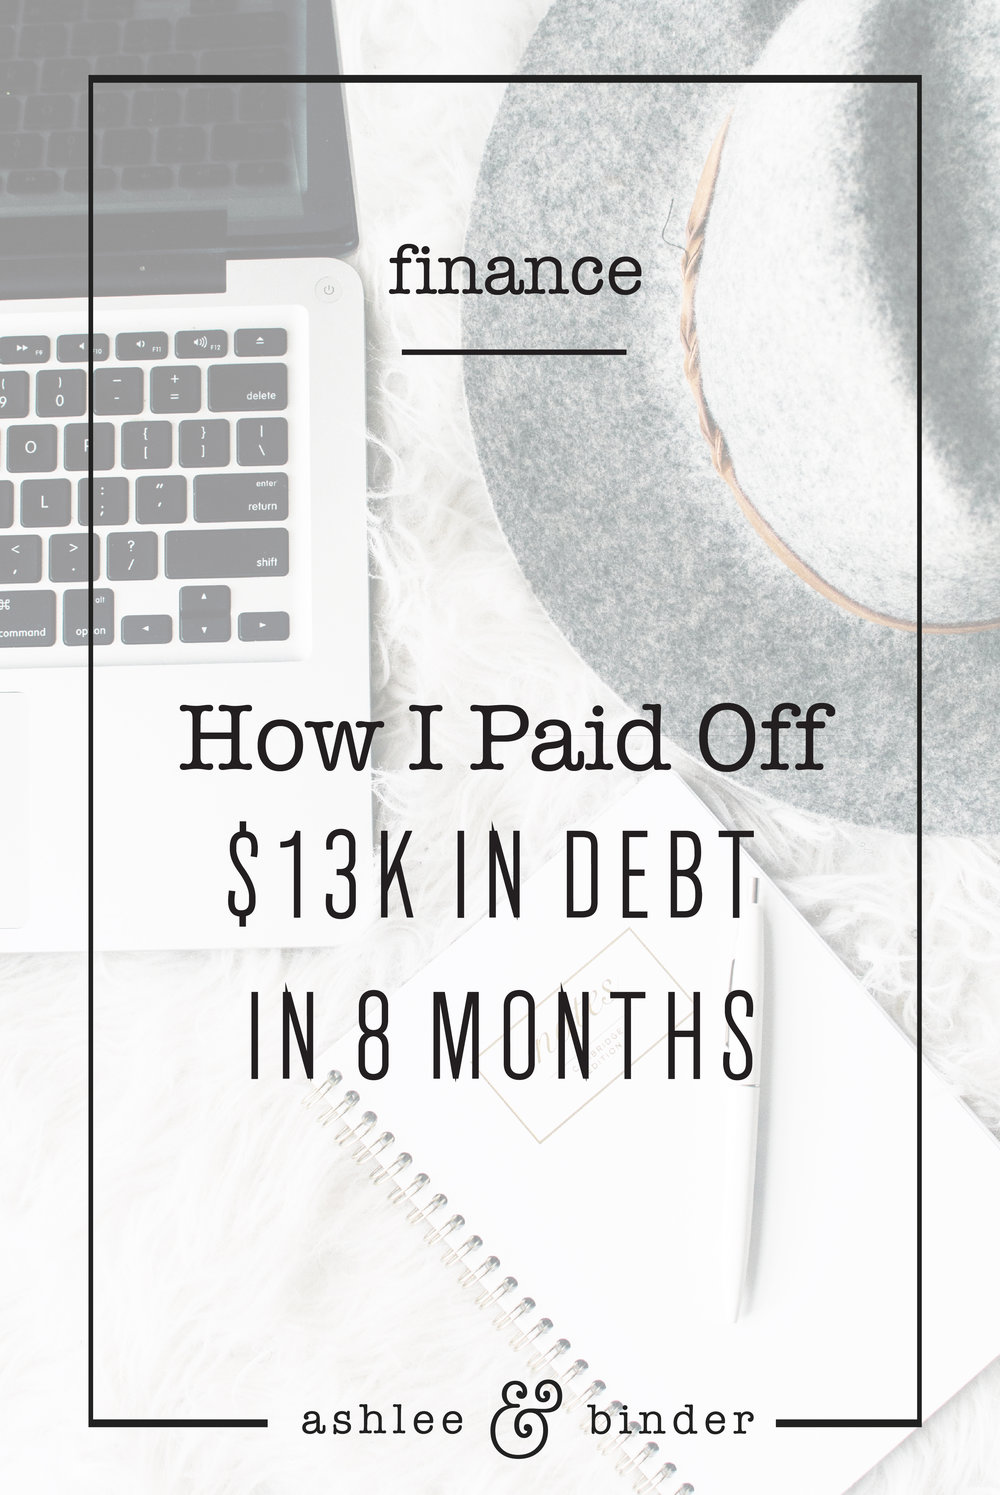 How I Paid Off $13K in Student Loan Debt in 8 Months